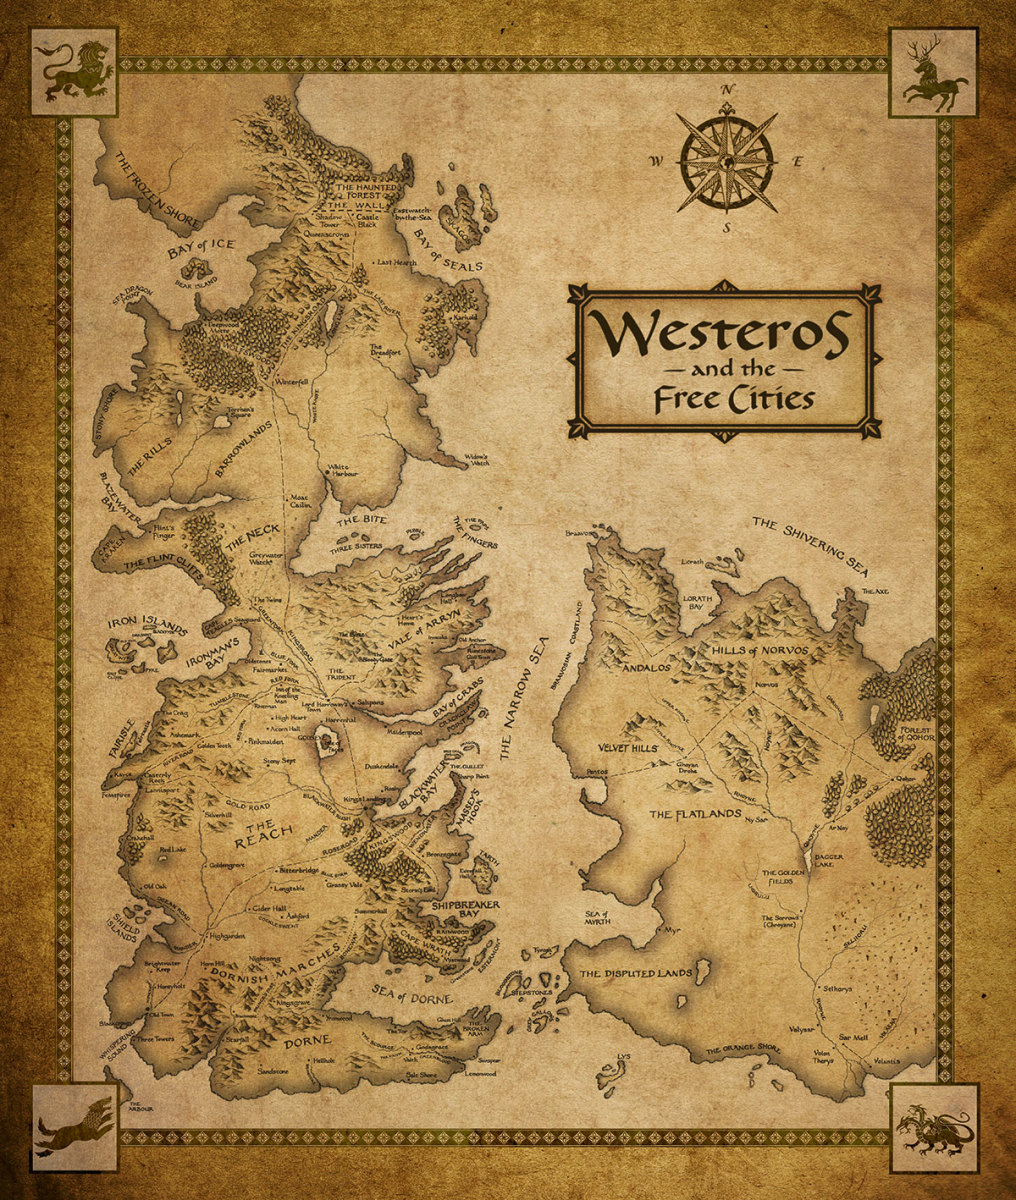 Map of Westeros and the free cities